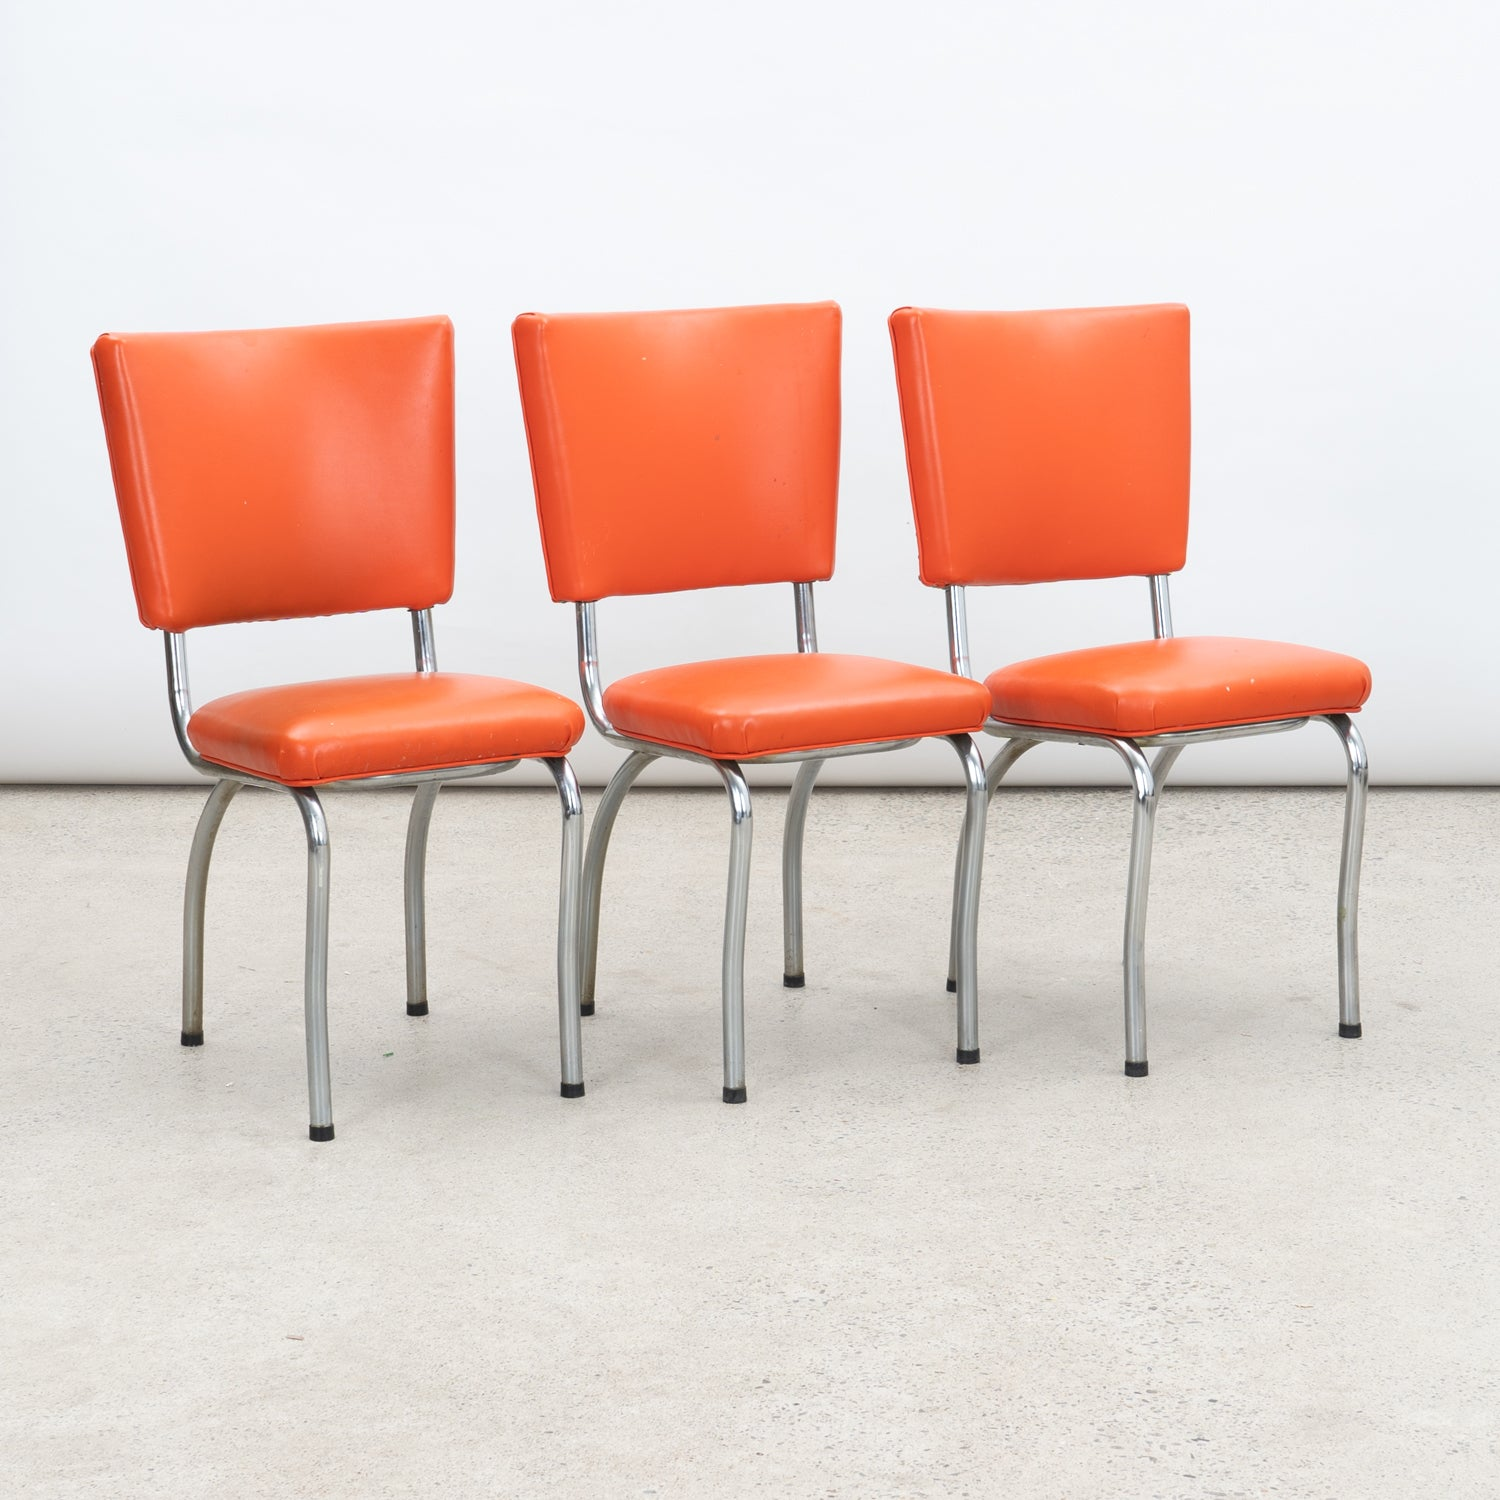 1950s Chrome & Vinyl Chairs